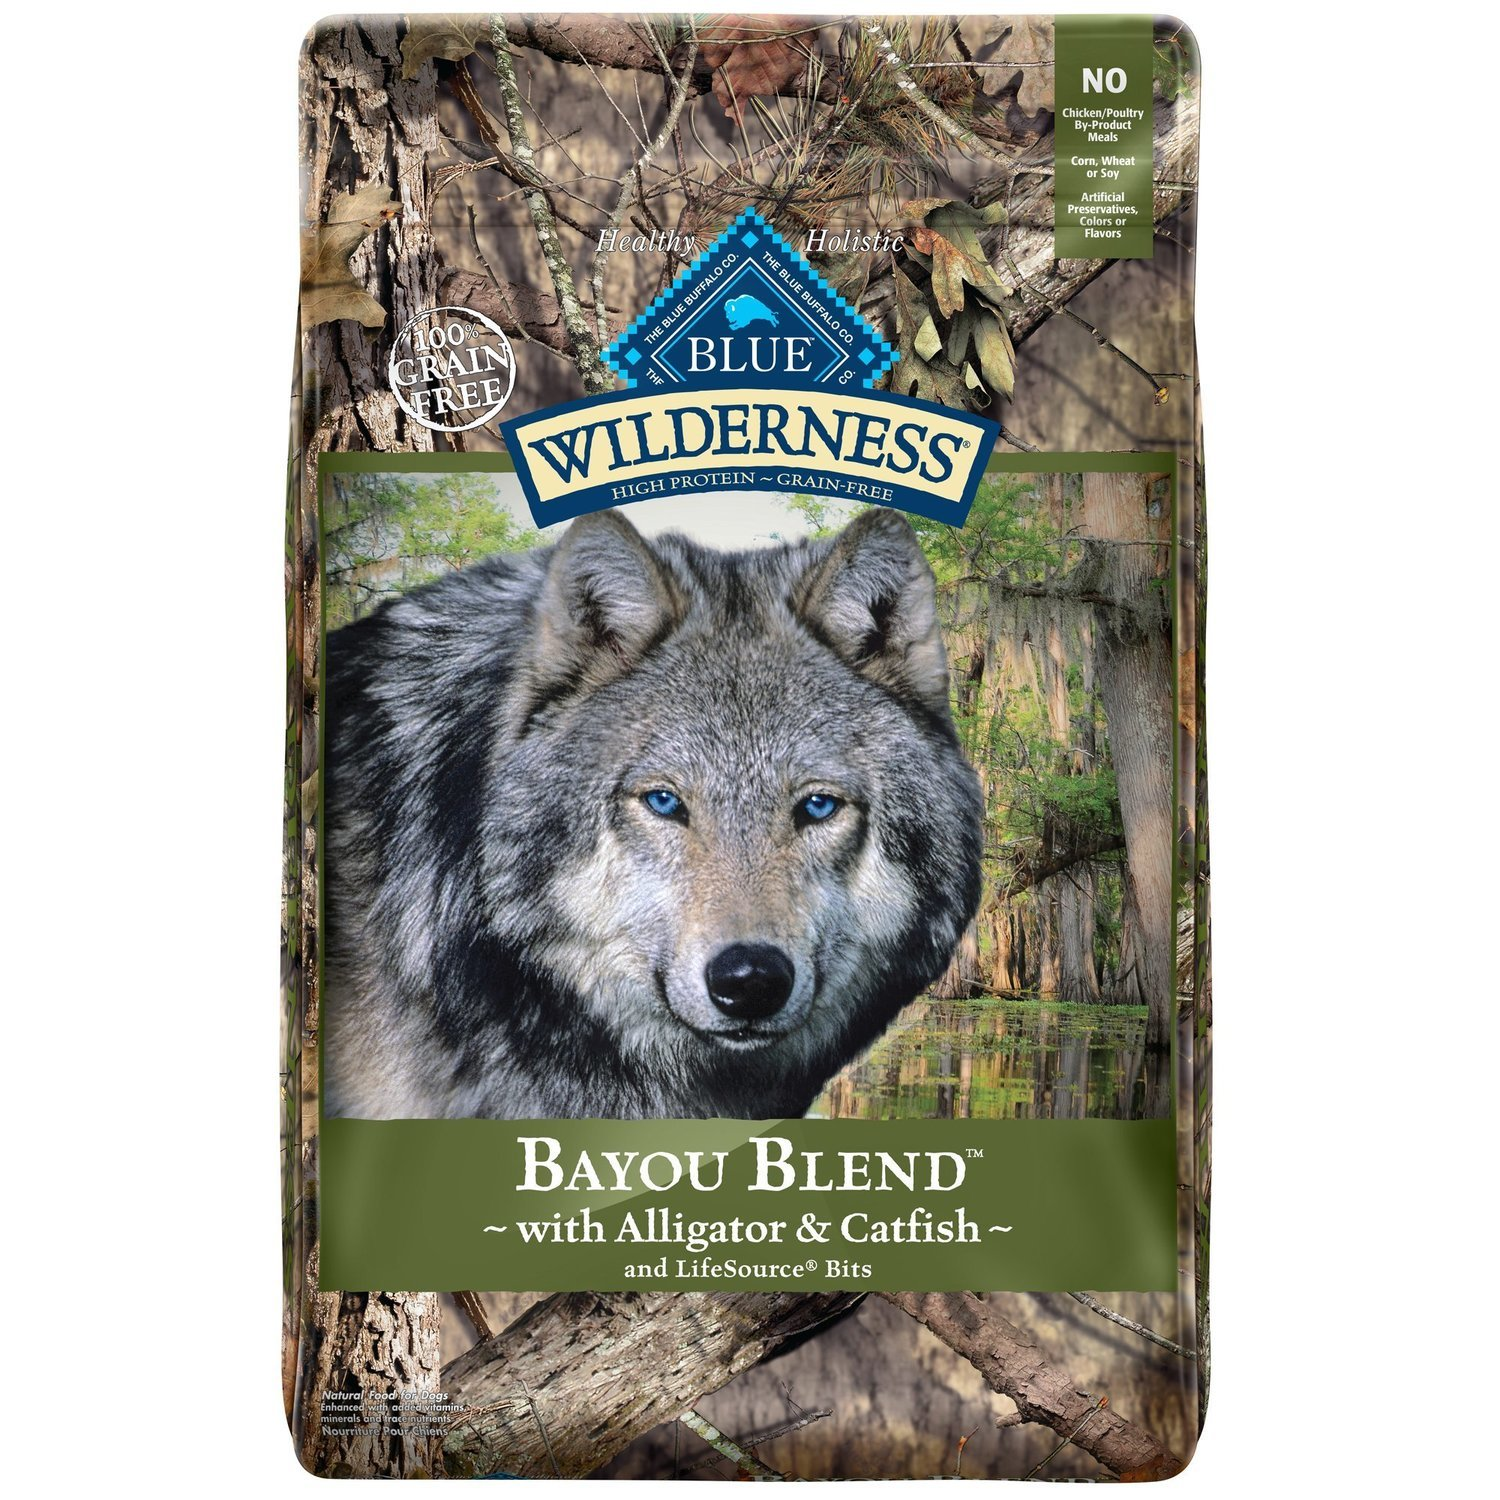 BLUE Wilderness Bayou Blend with Alligator & Catfish Dry Dog Food, 22 lbs. (5/19) (A.Q7)